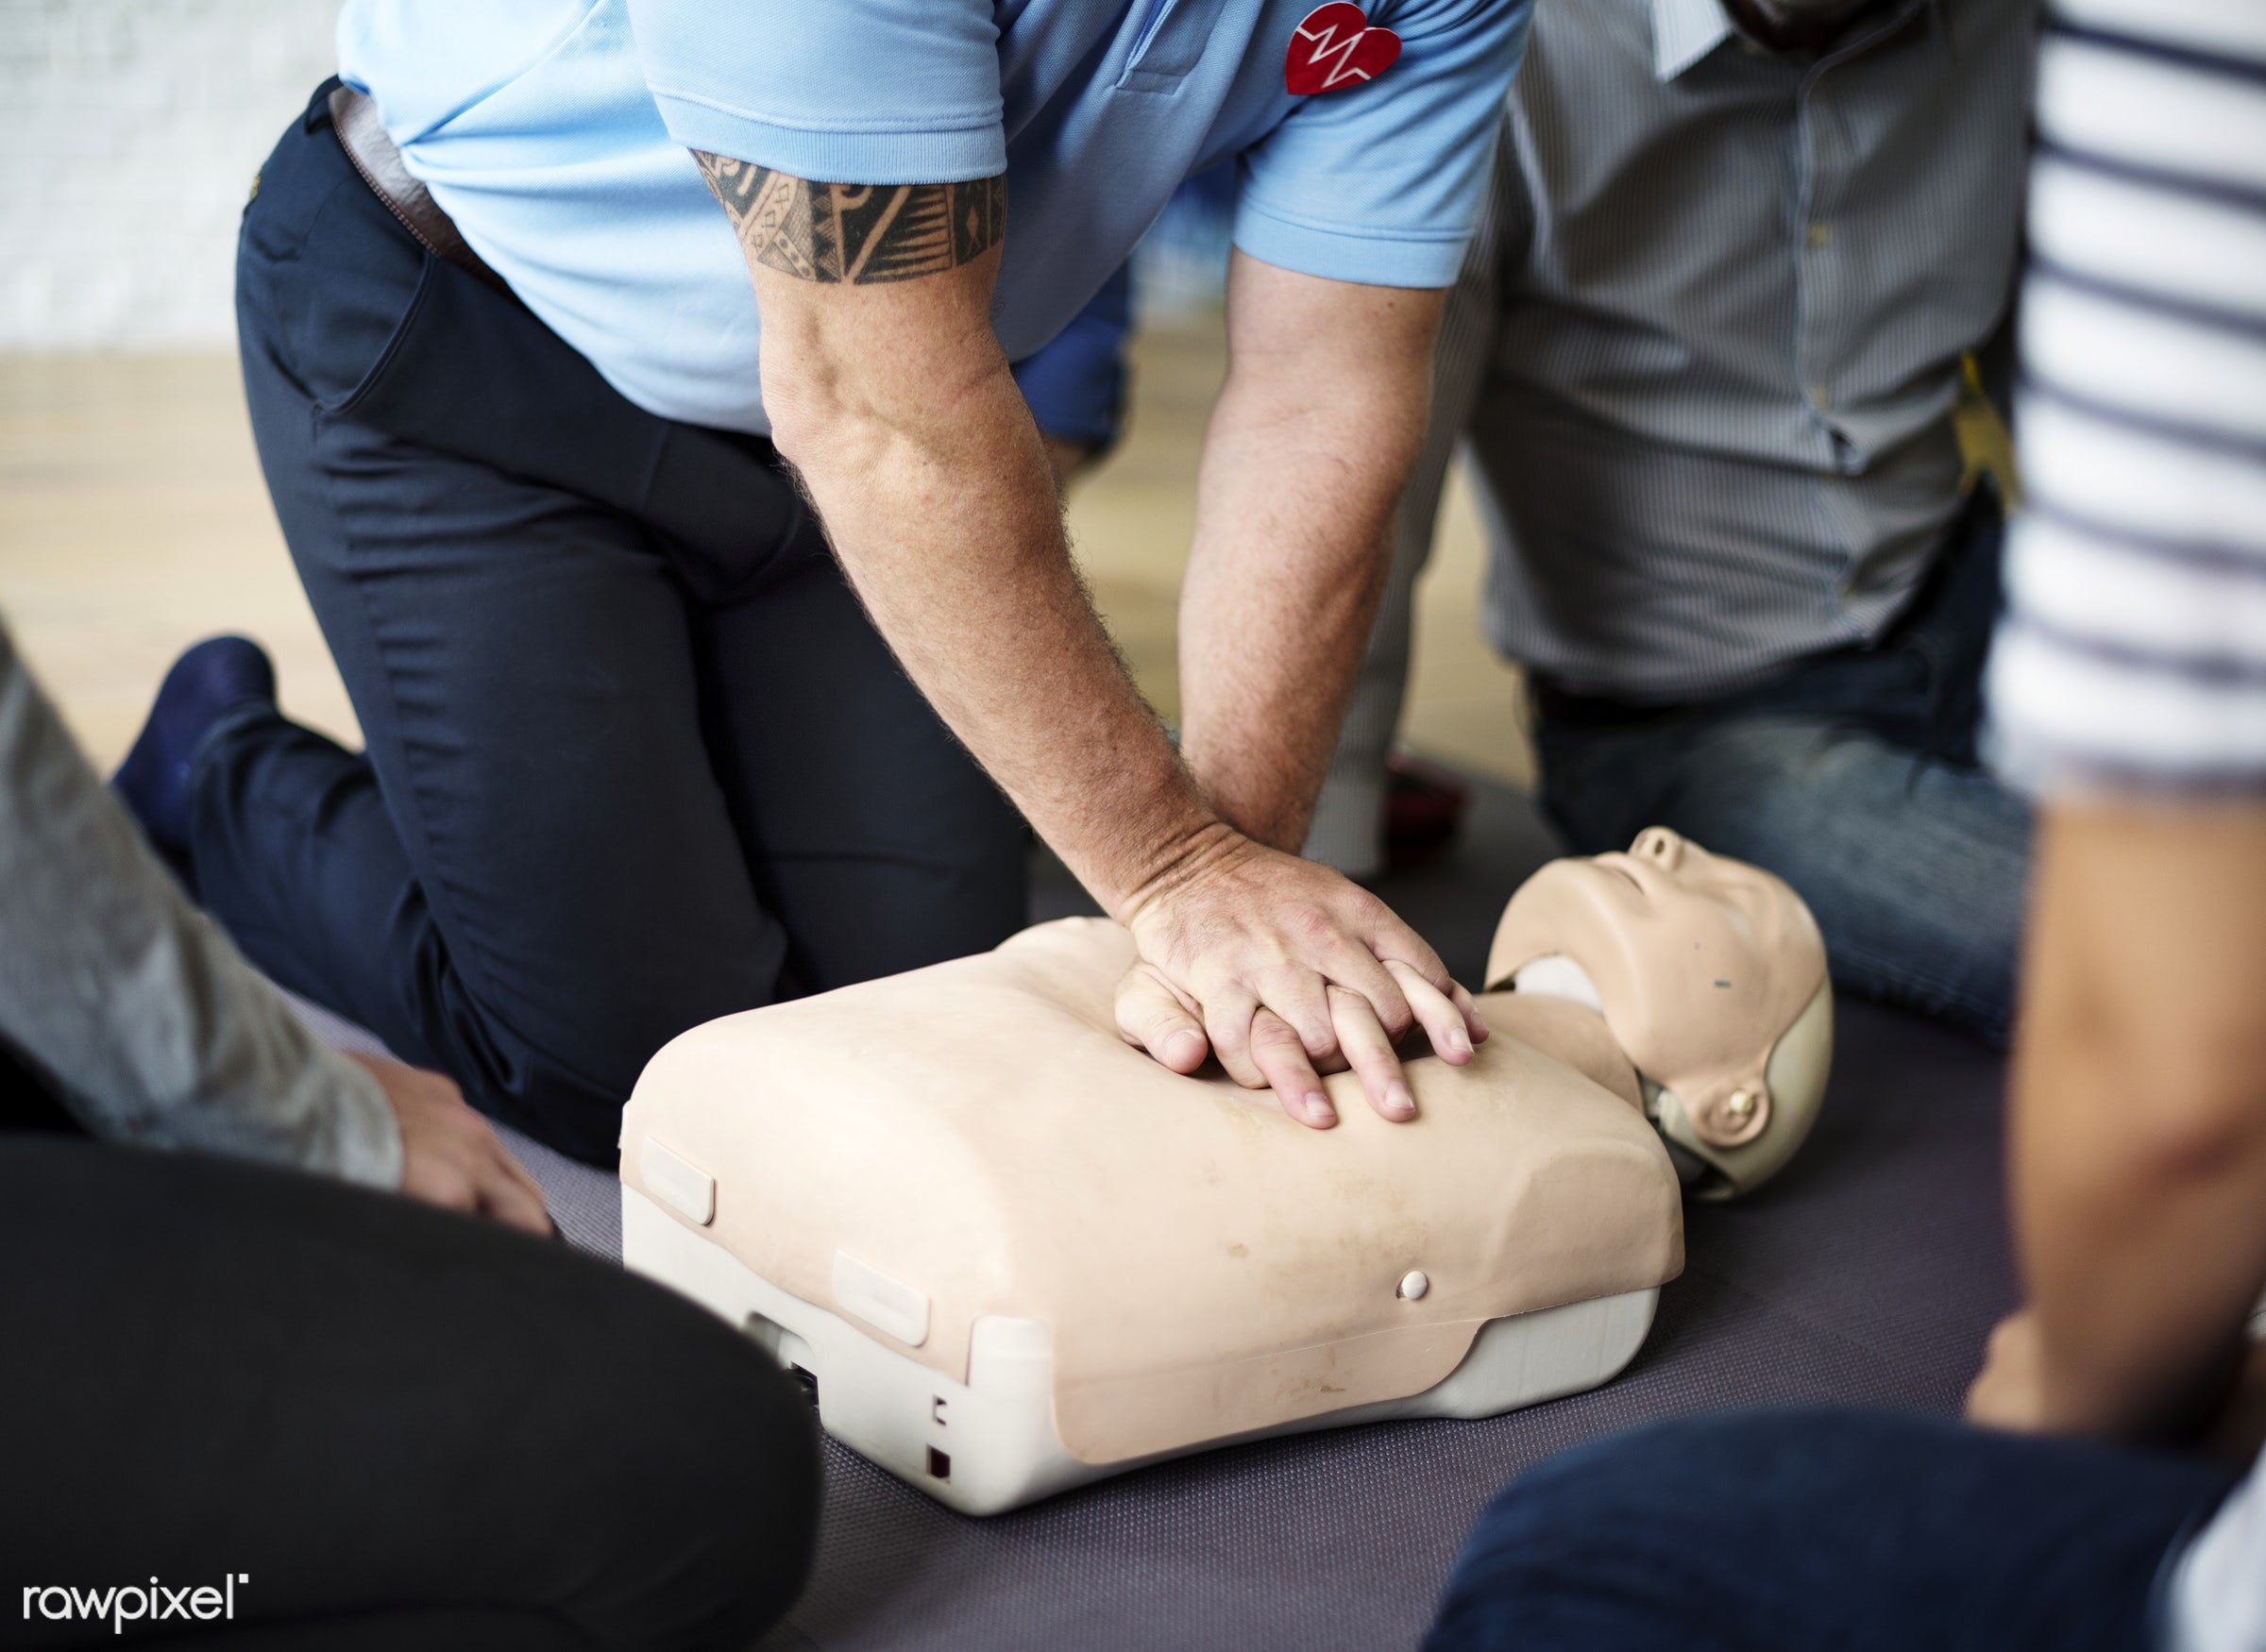 C - cpr training, person, knowledge, save, first aid, resuscitation, treatment, emergency, indoors, aid, people, emergency...